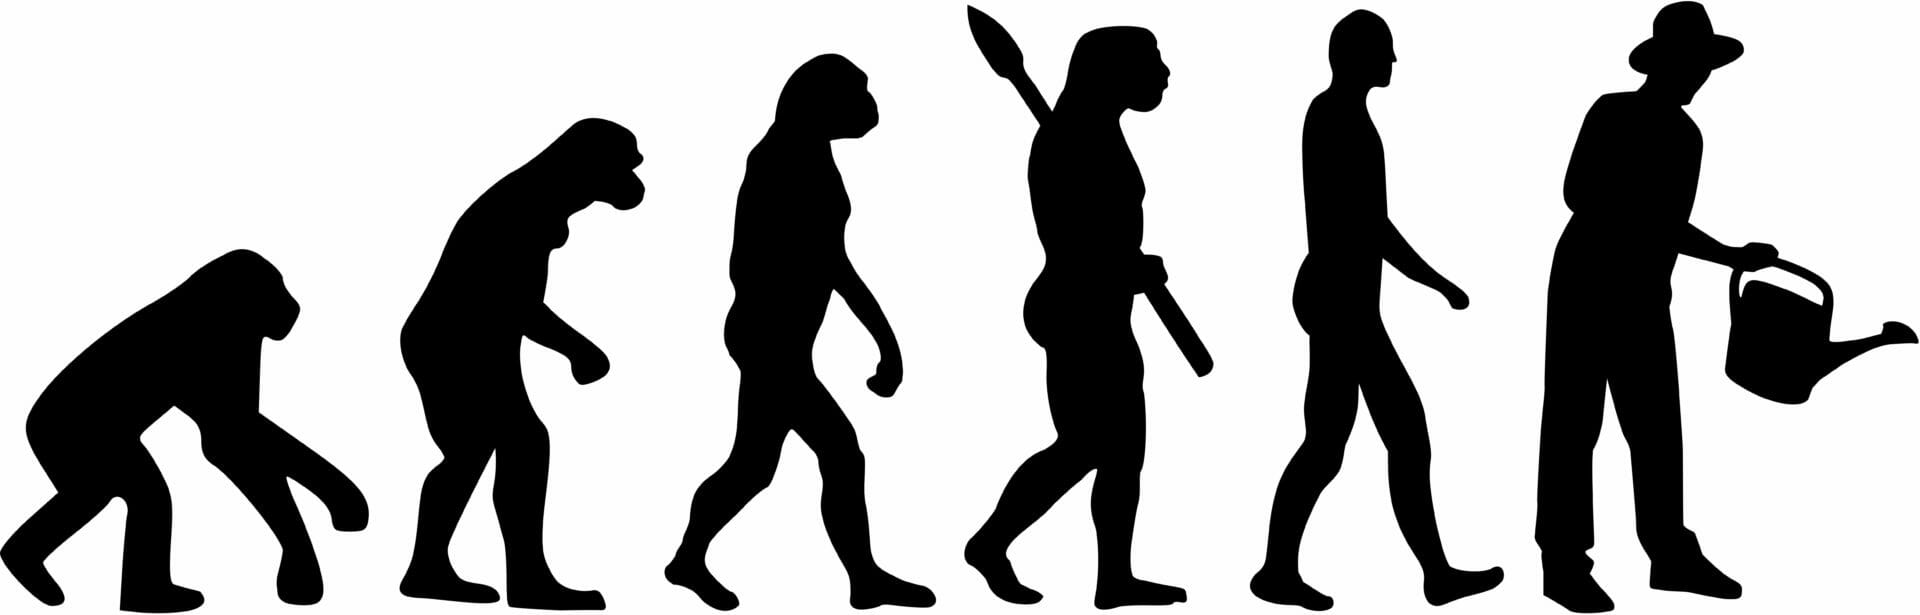 Grains were not a part of the human diet for most of our species' history.